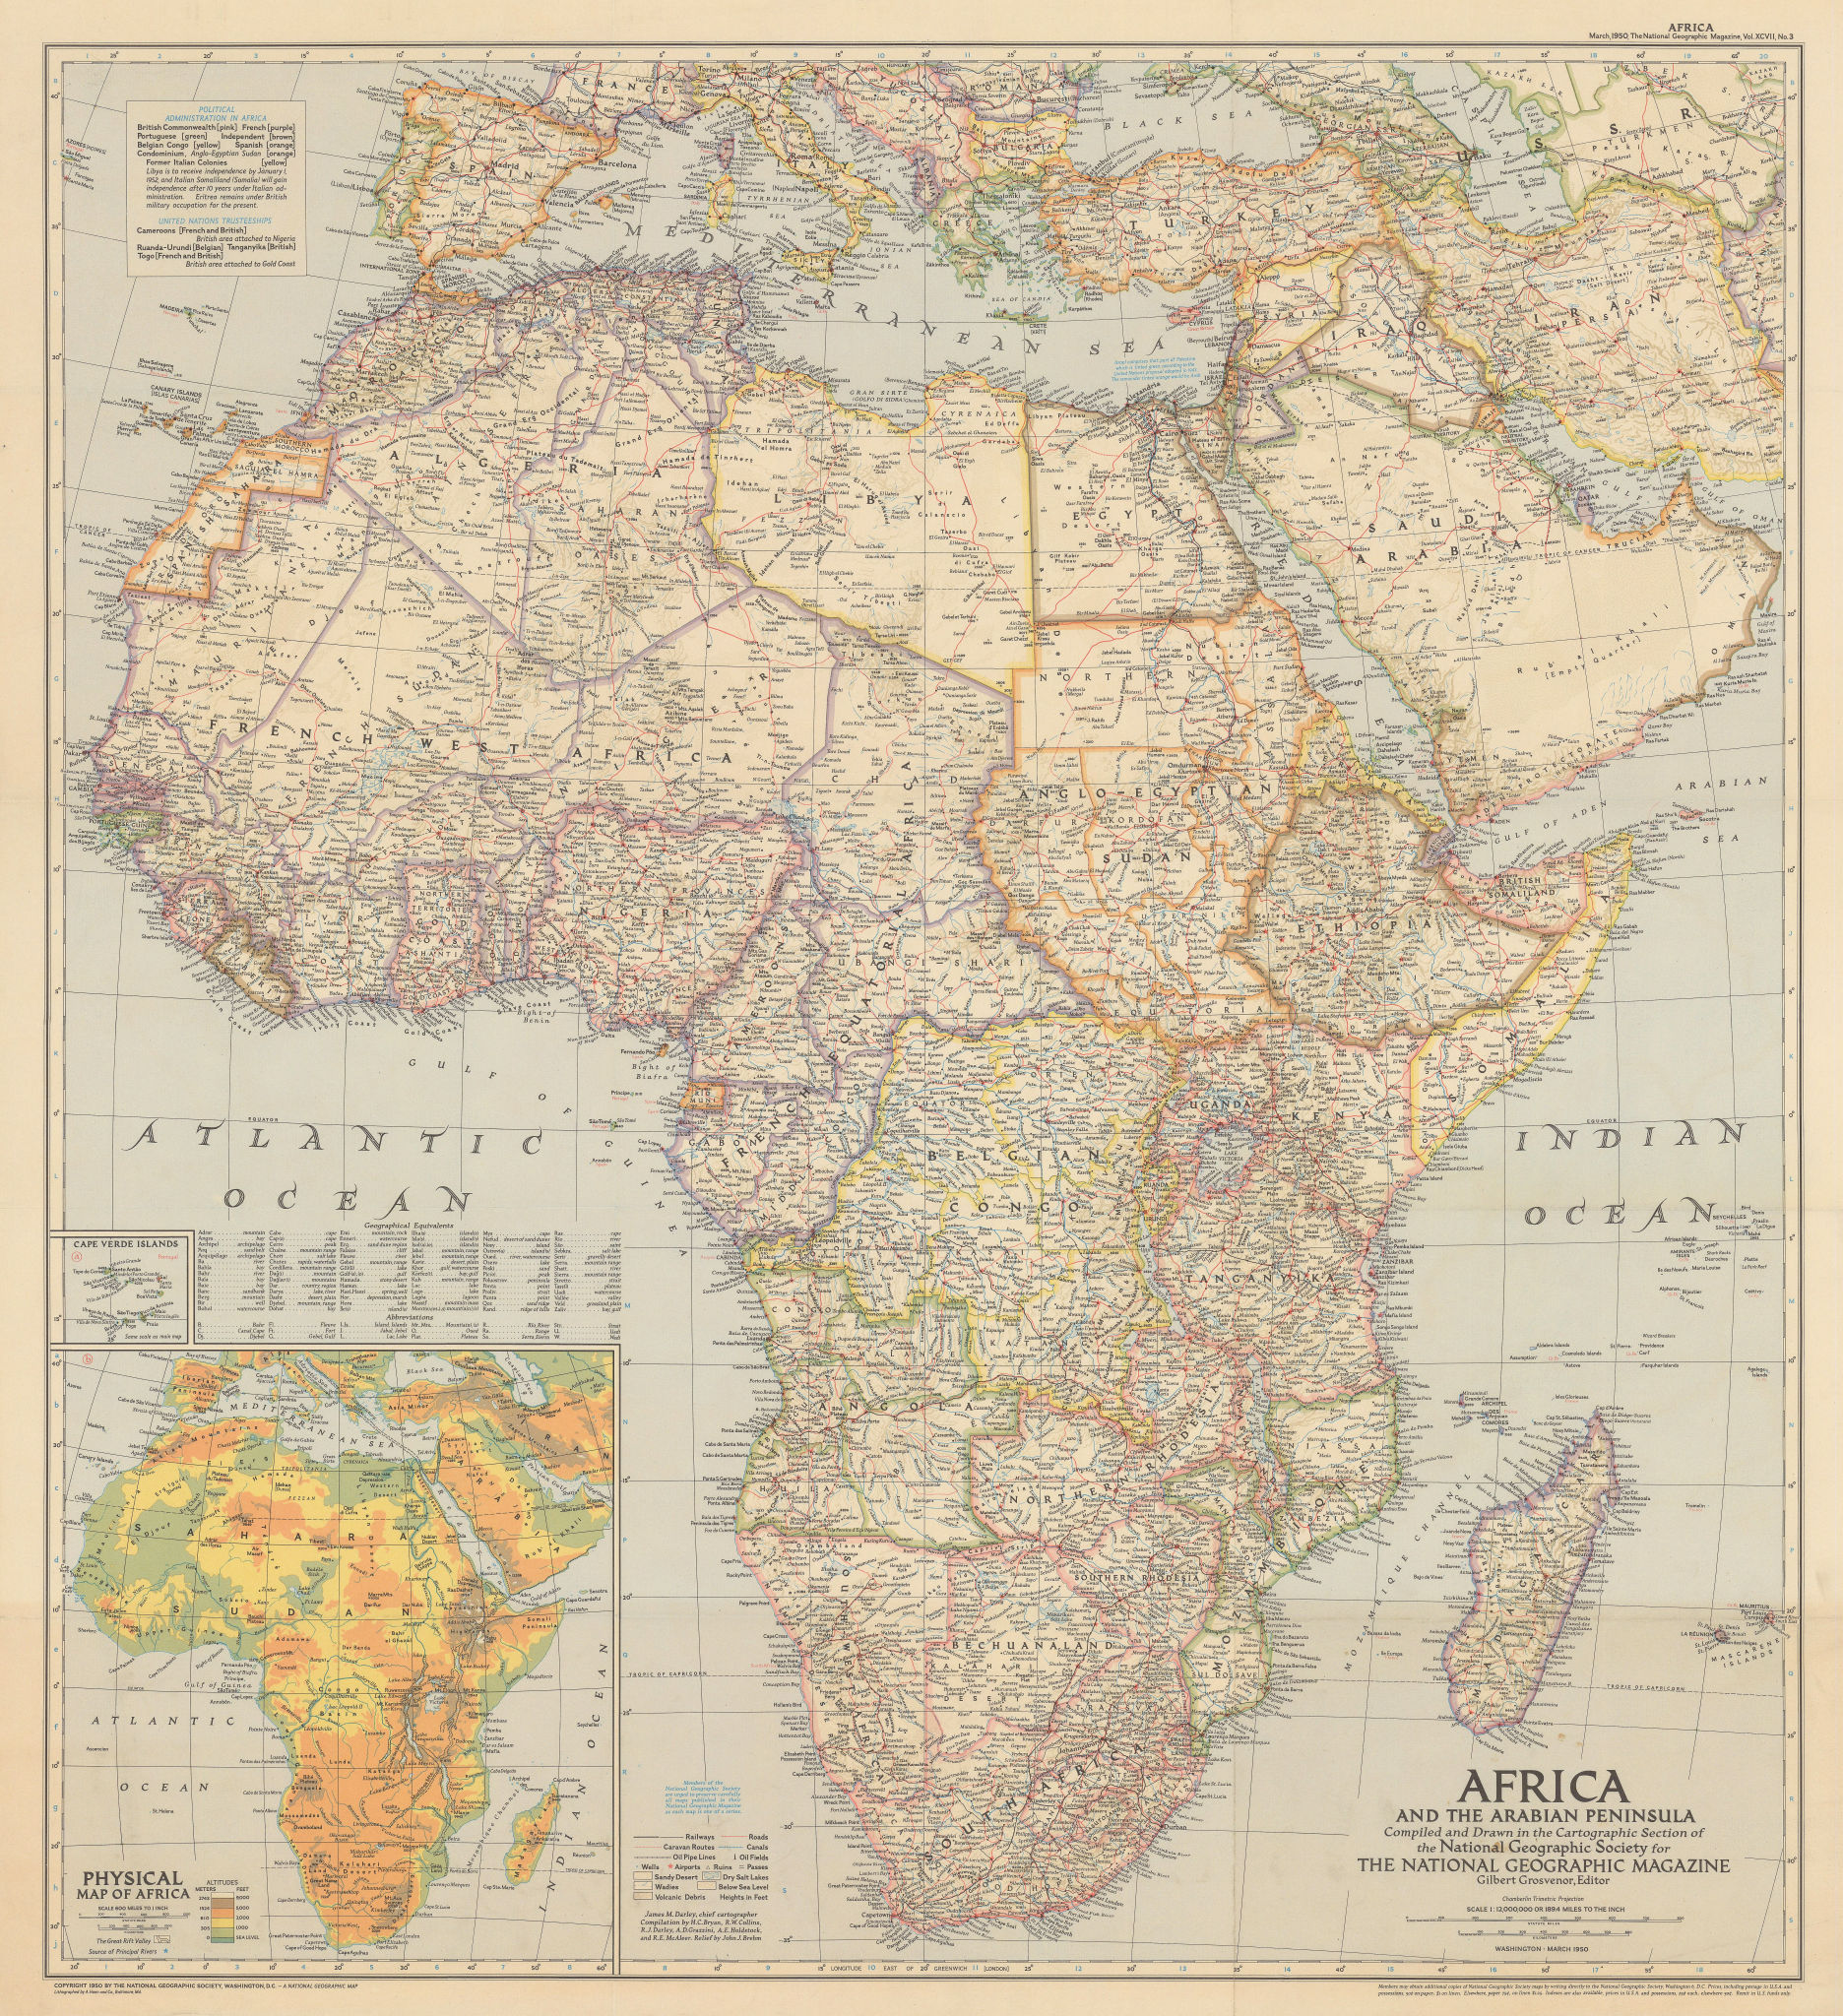 Late colonial Africa & the Arabian Peninsula. National Geographic 1950 old map